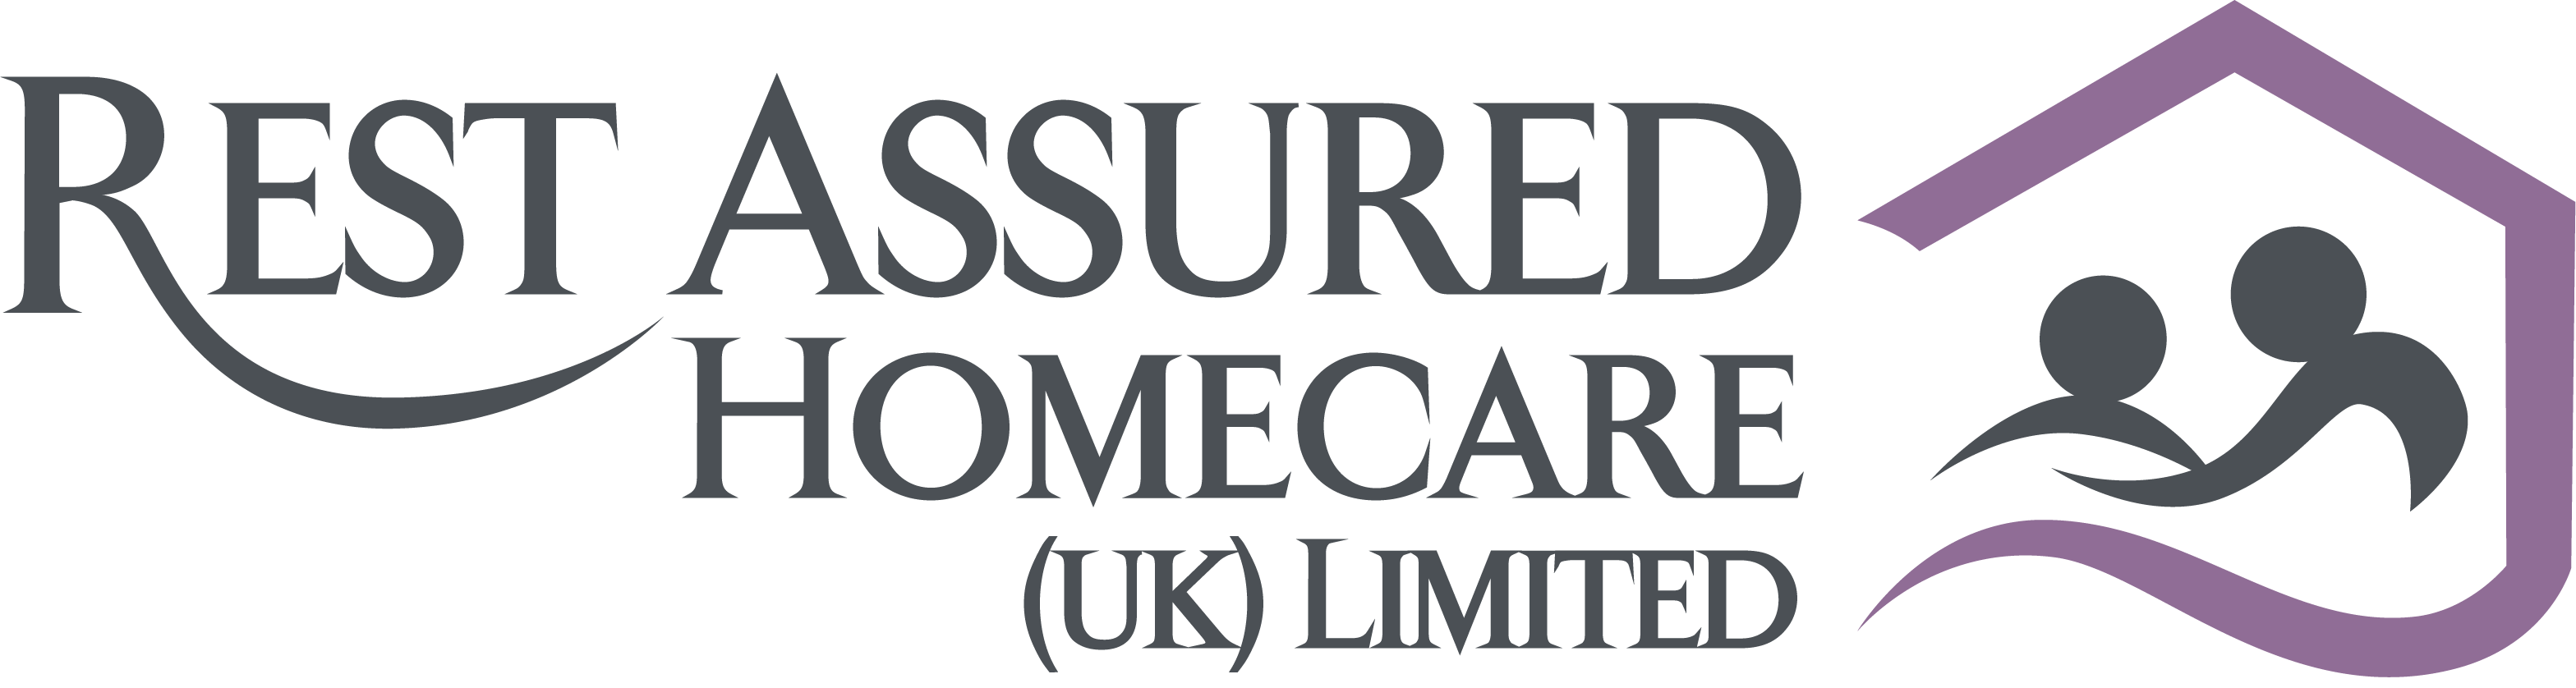 Rest Assured Homecare (UK) Limited